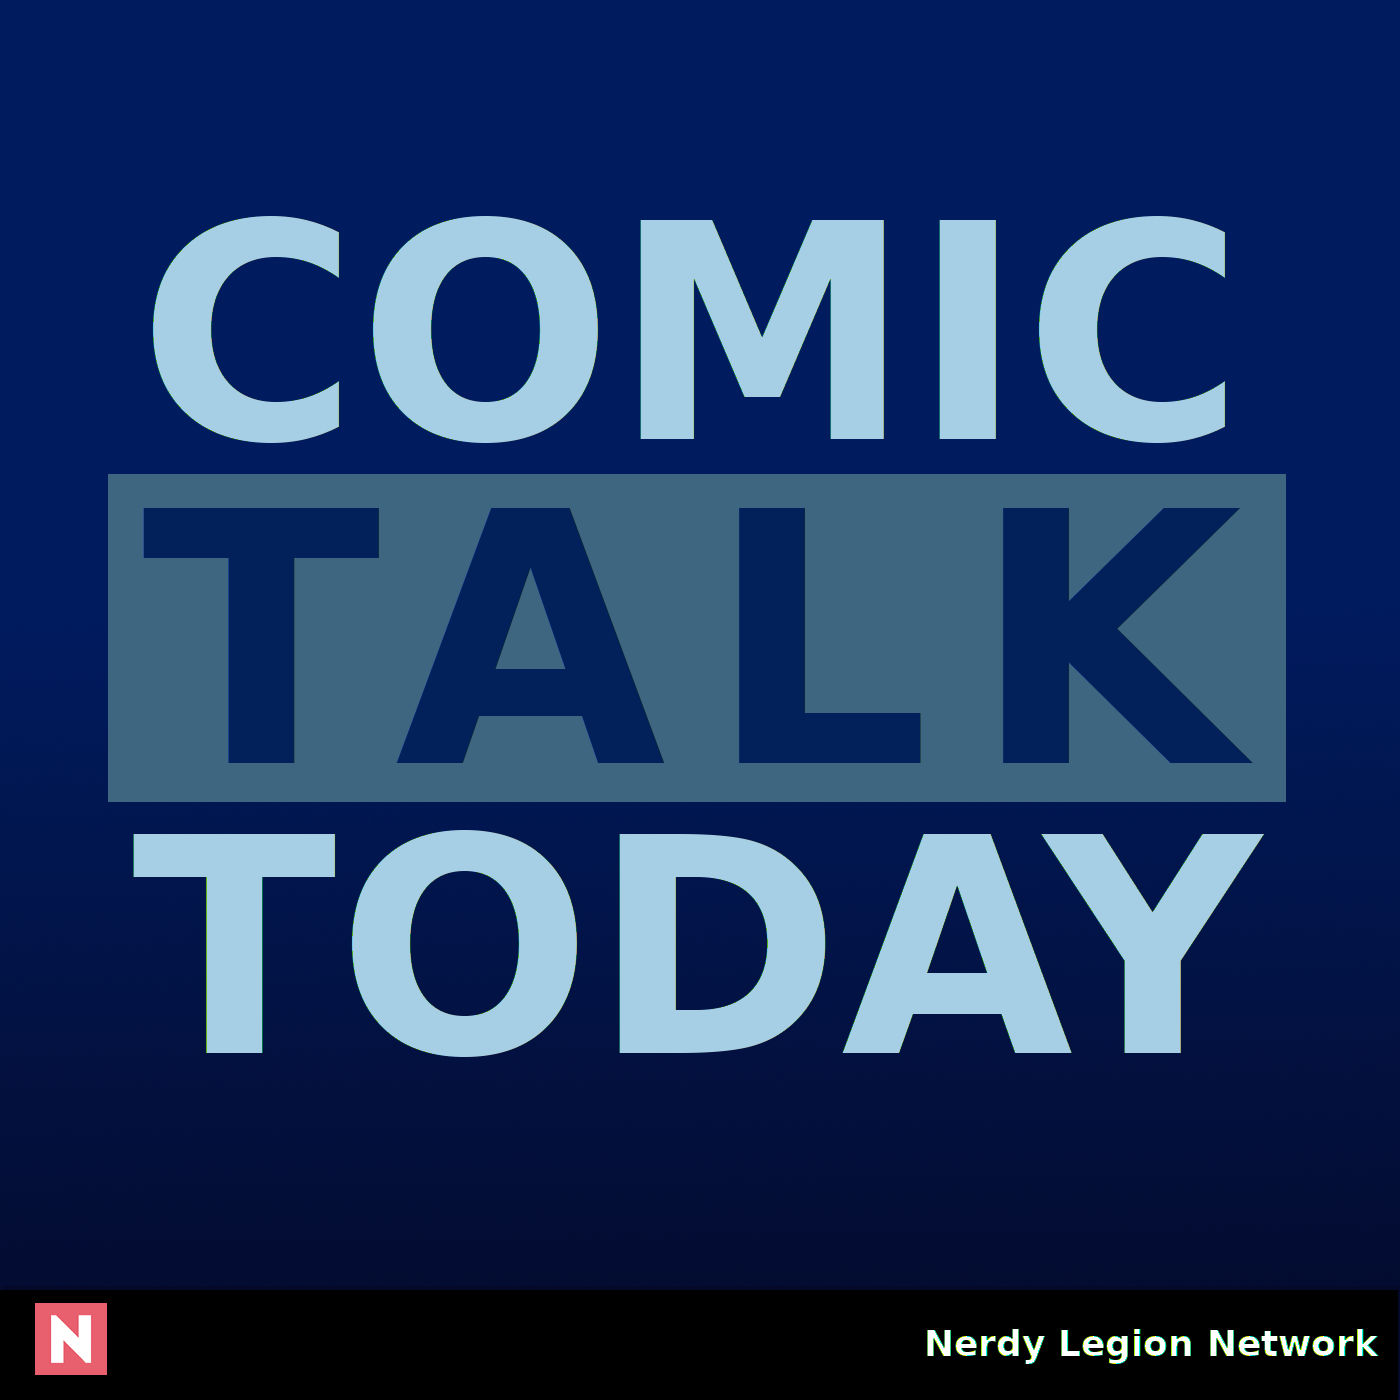 Comic Talk Today